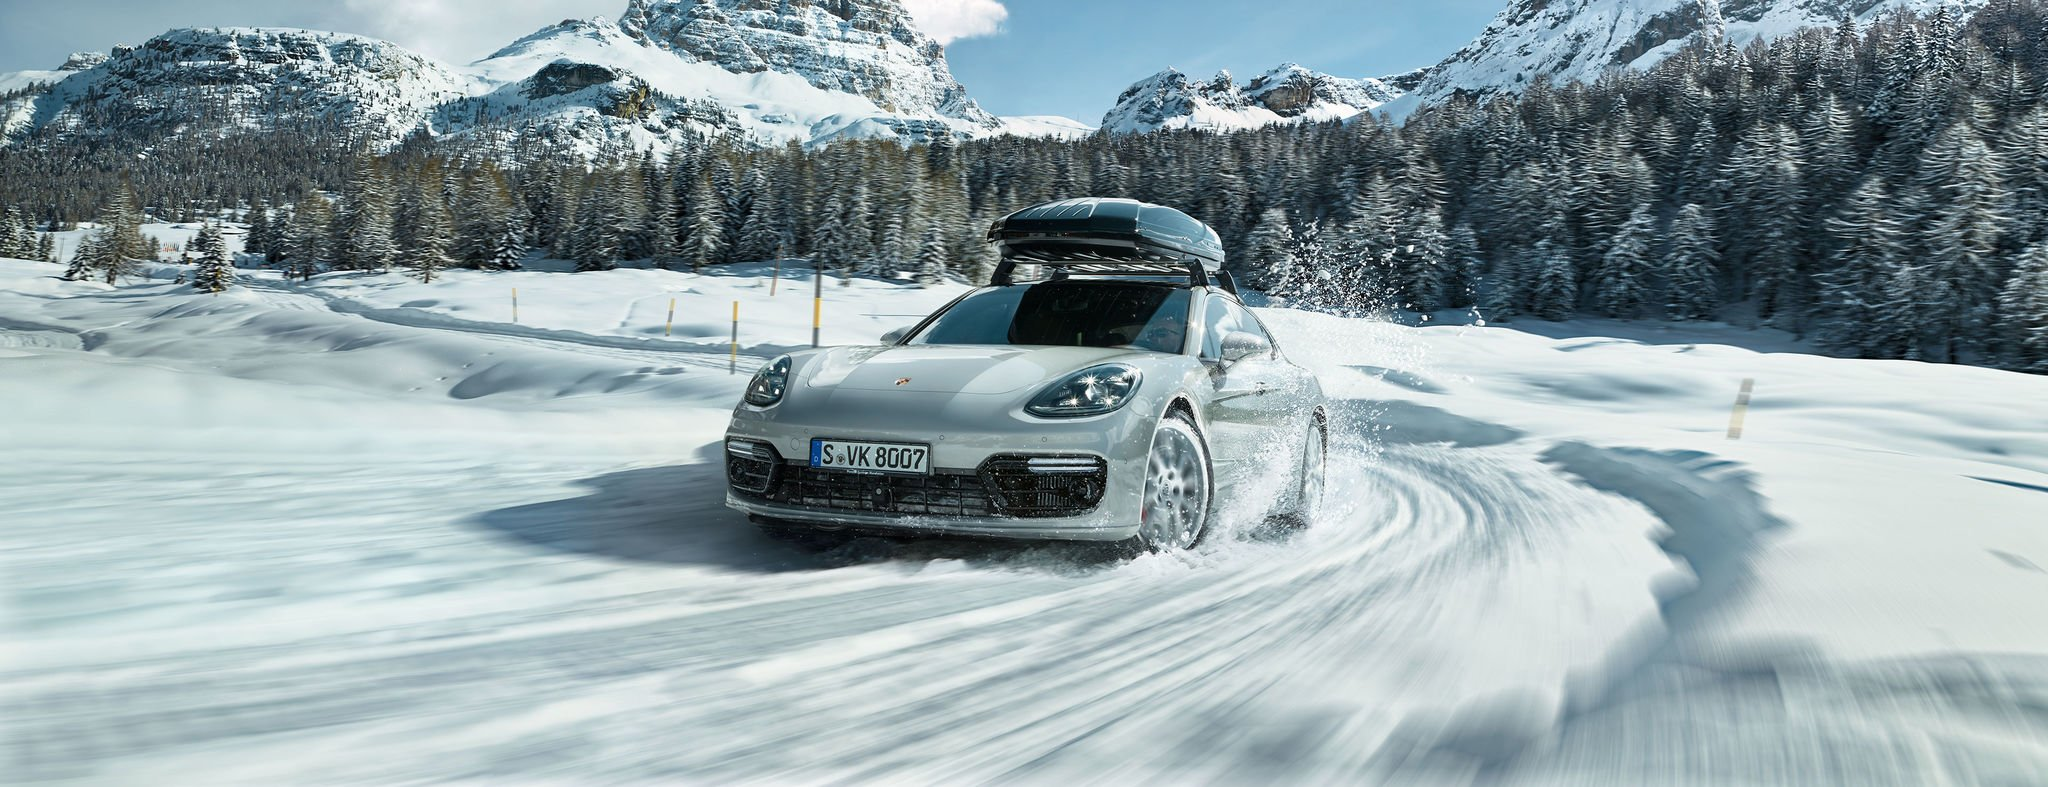 Porsche In Snow Driving